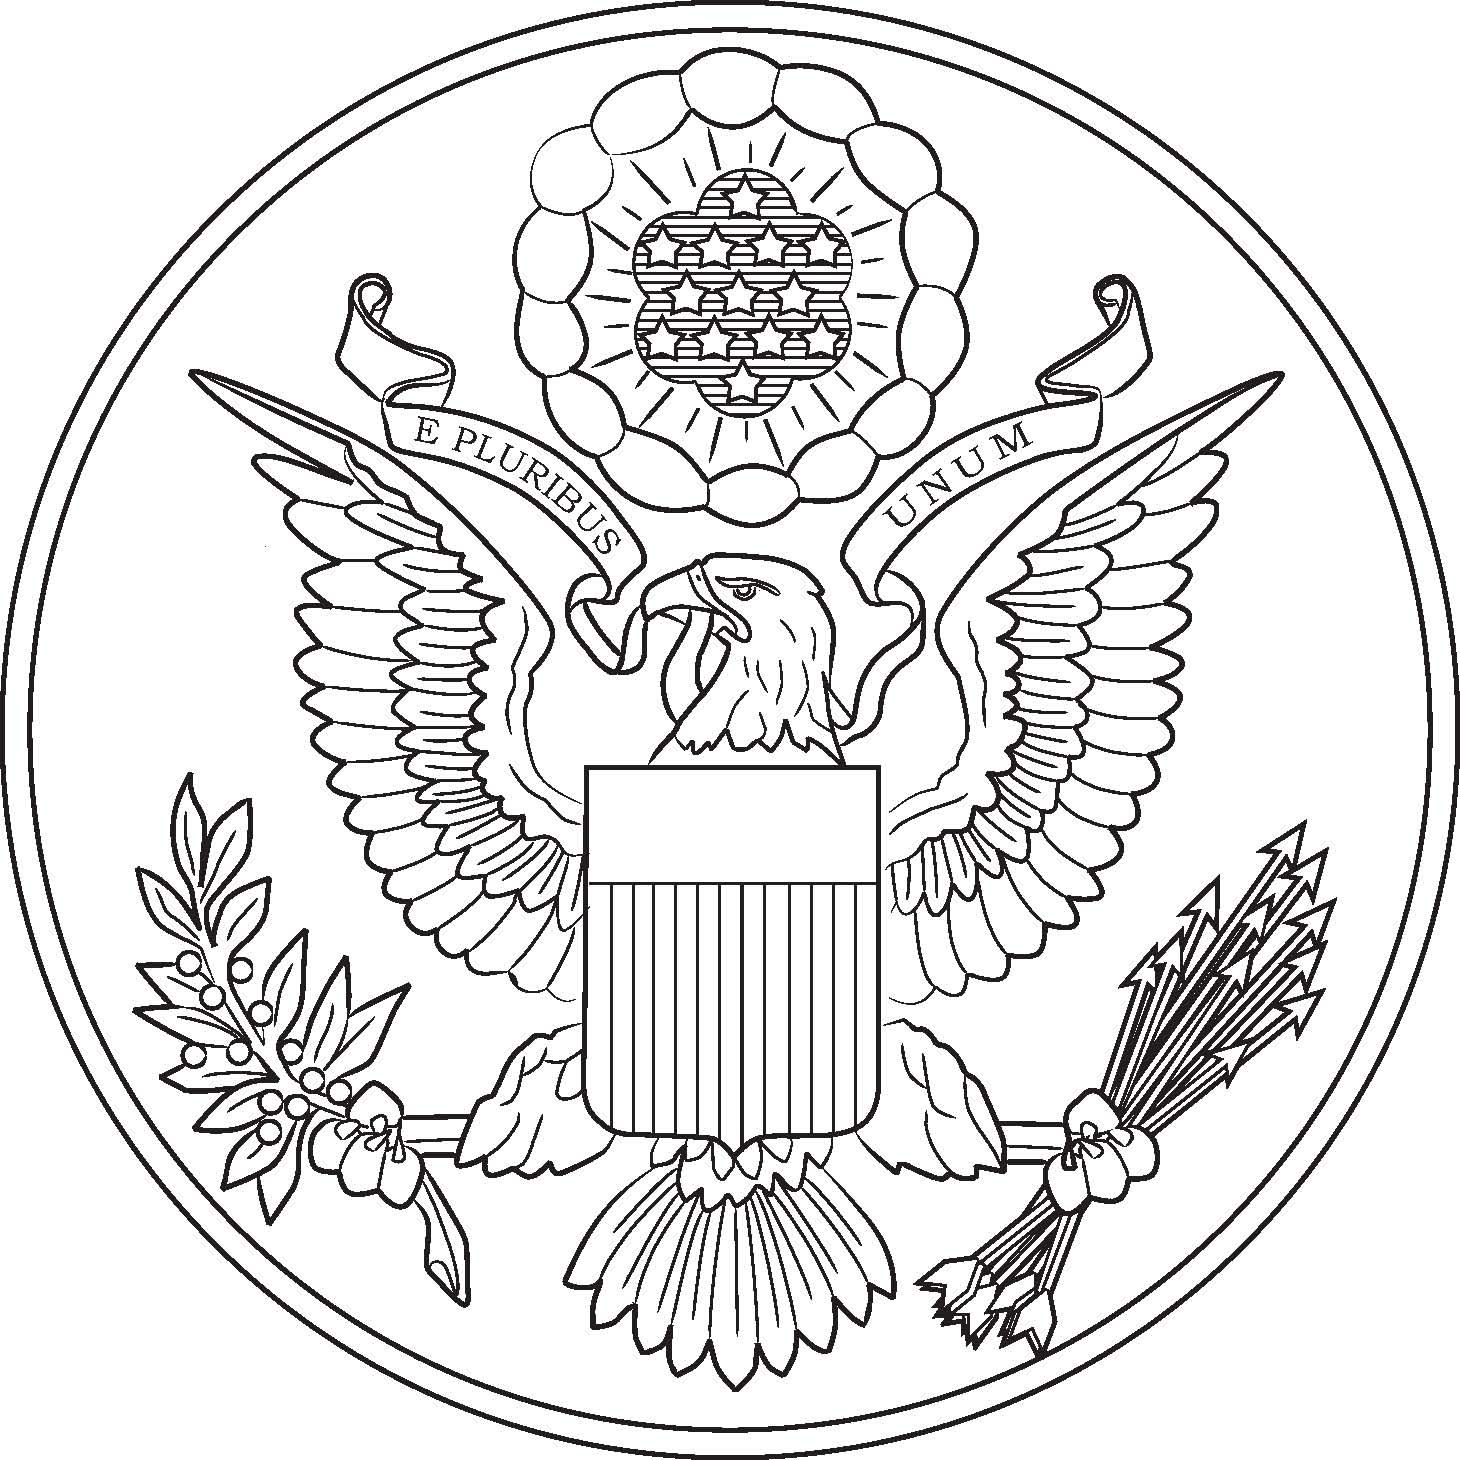 the great seal of the united states coloring page  avast